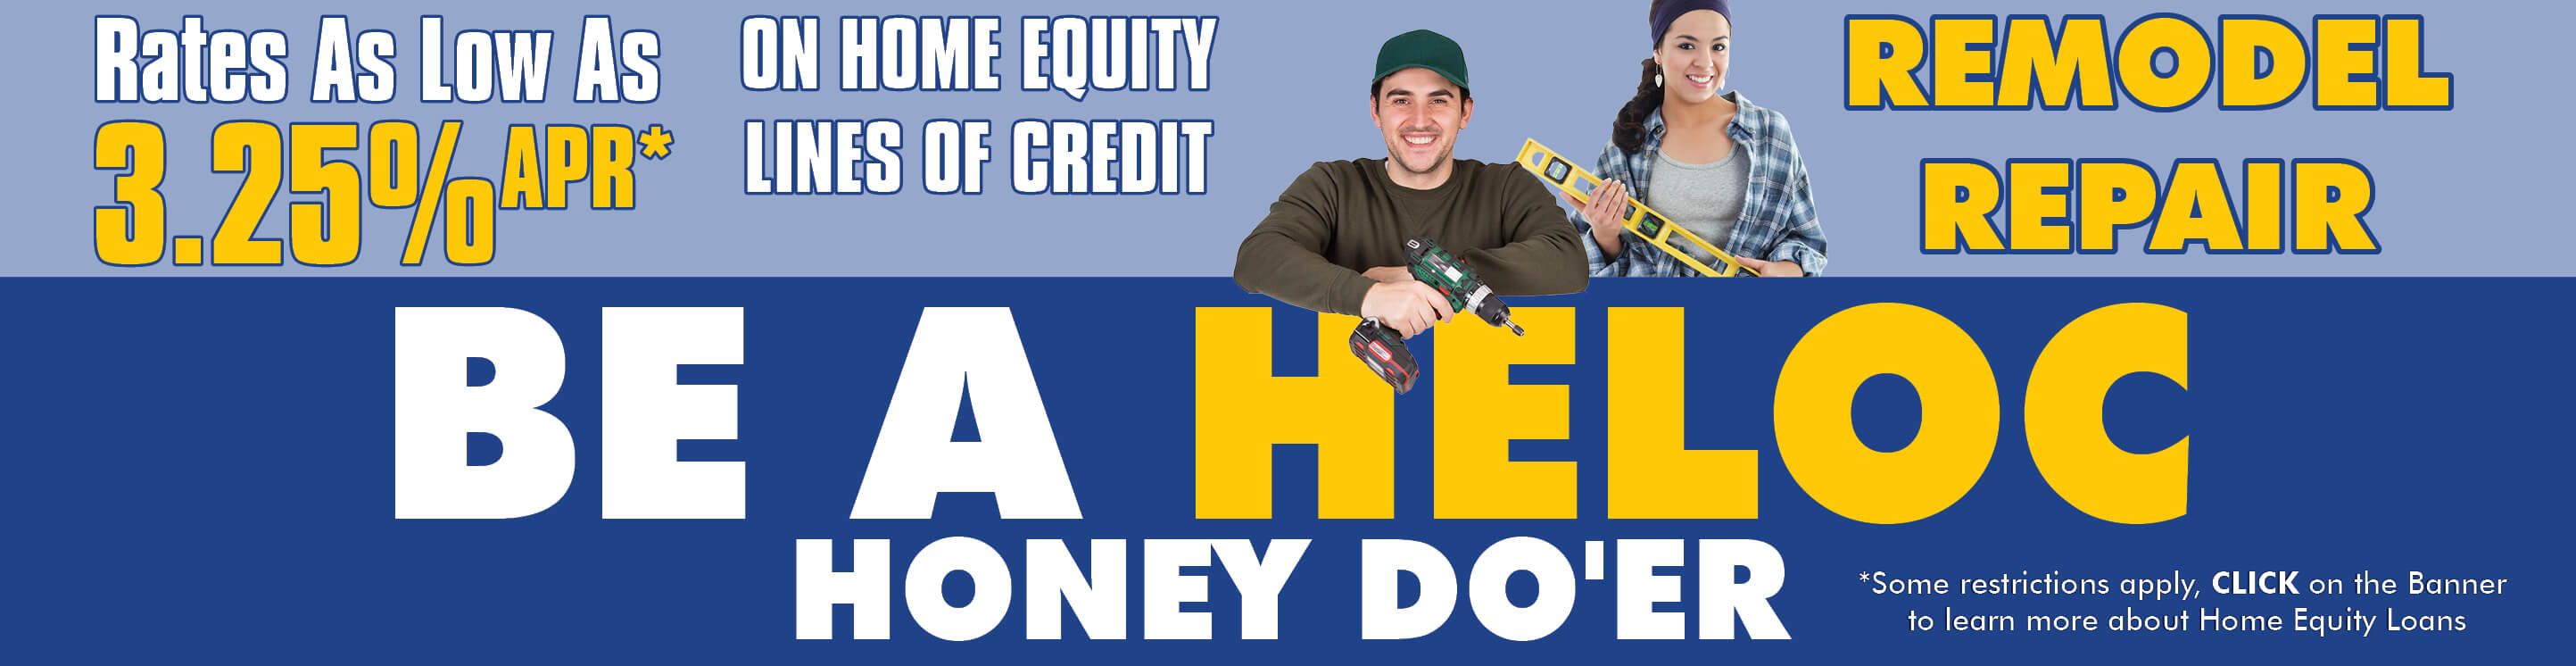 An ethnic couple man and woman with tools in hand ready to work. The Text reads Be A HELOC Honey-Do'er. Rates as low as 3.25% APR on Home Equity Lines of Credit.